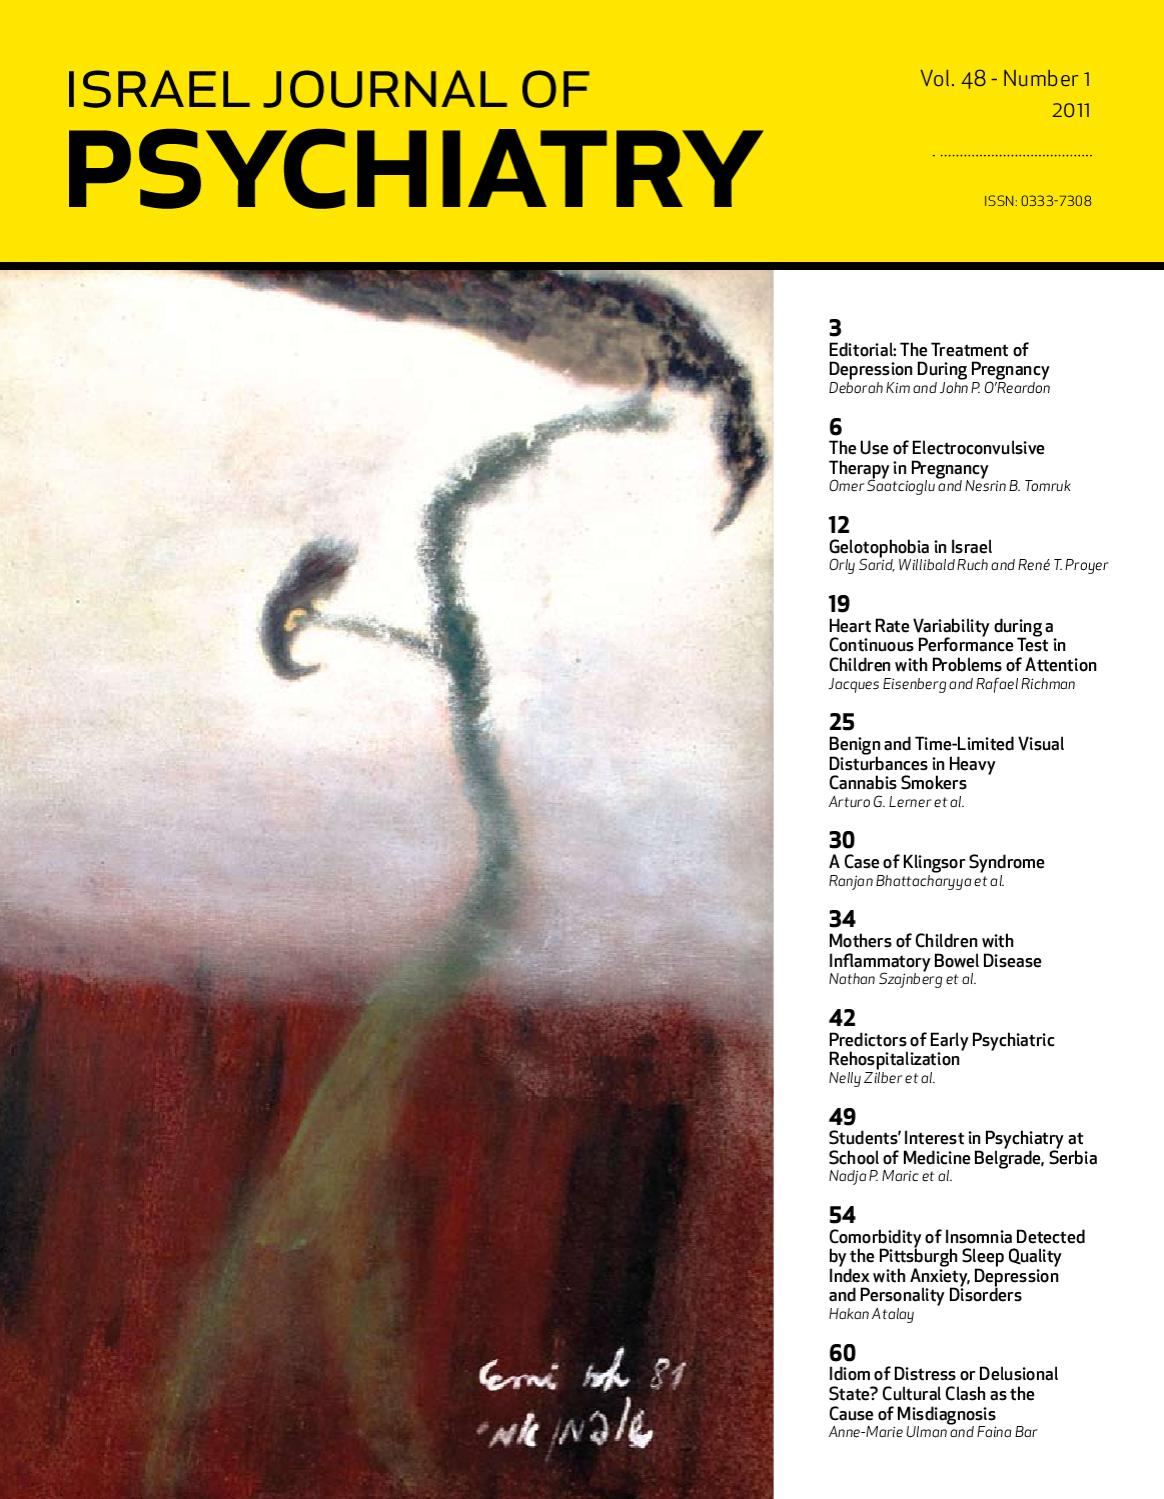 201101_israel journal of psychiatry and related sciences by MEDIC - issuu